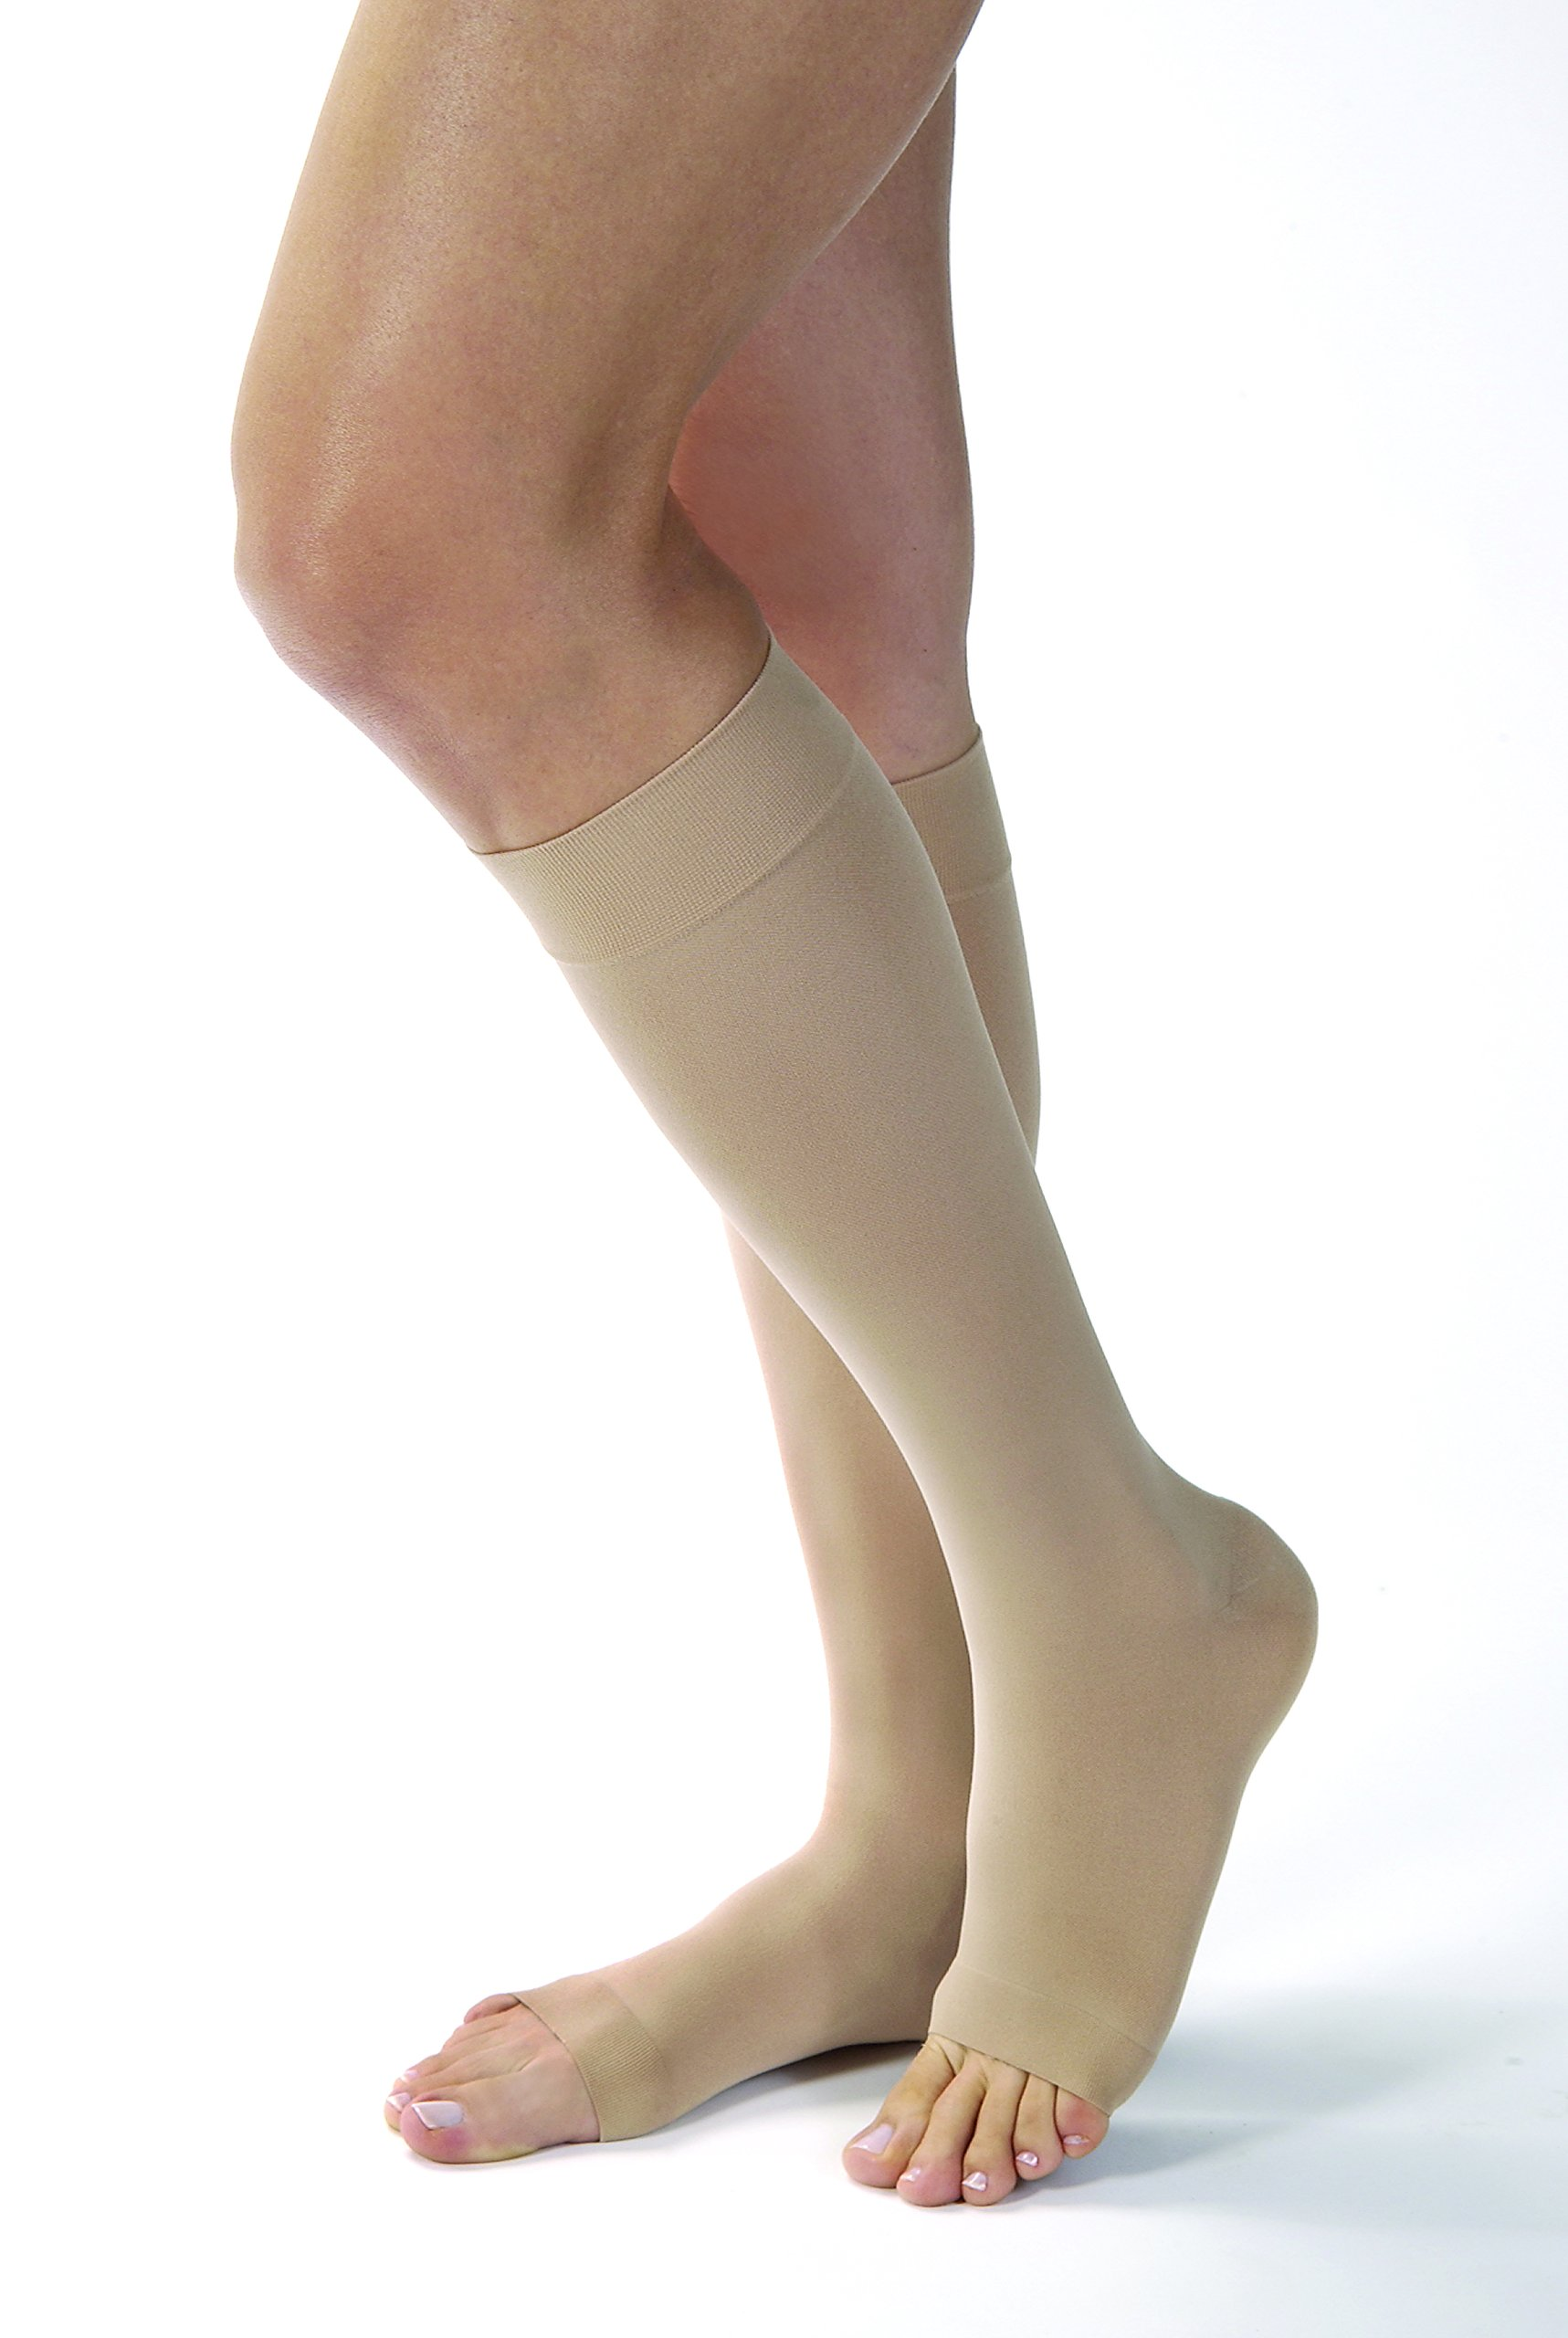 BSN Medical/Jobst 115621 Opaque Compression Hose, Knee High, 20-30 mmHg, Open Toe, Petite, Medium, Natural